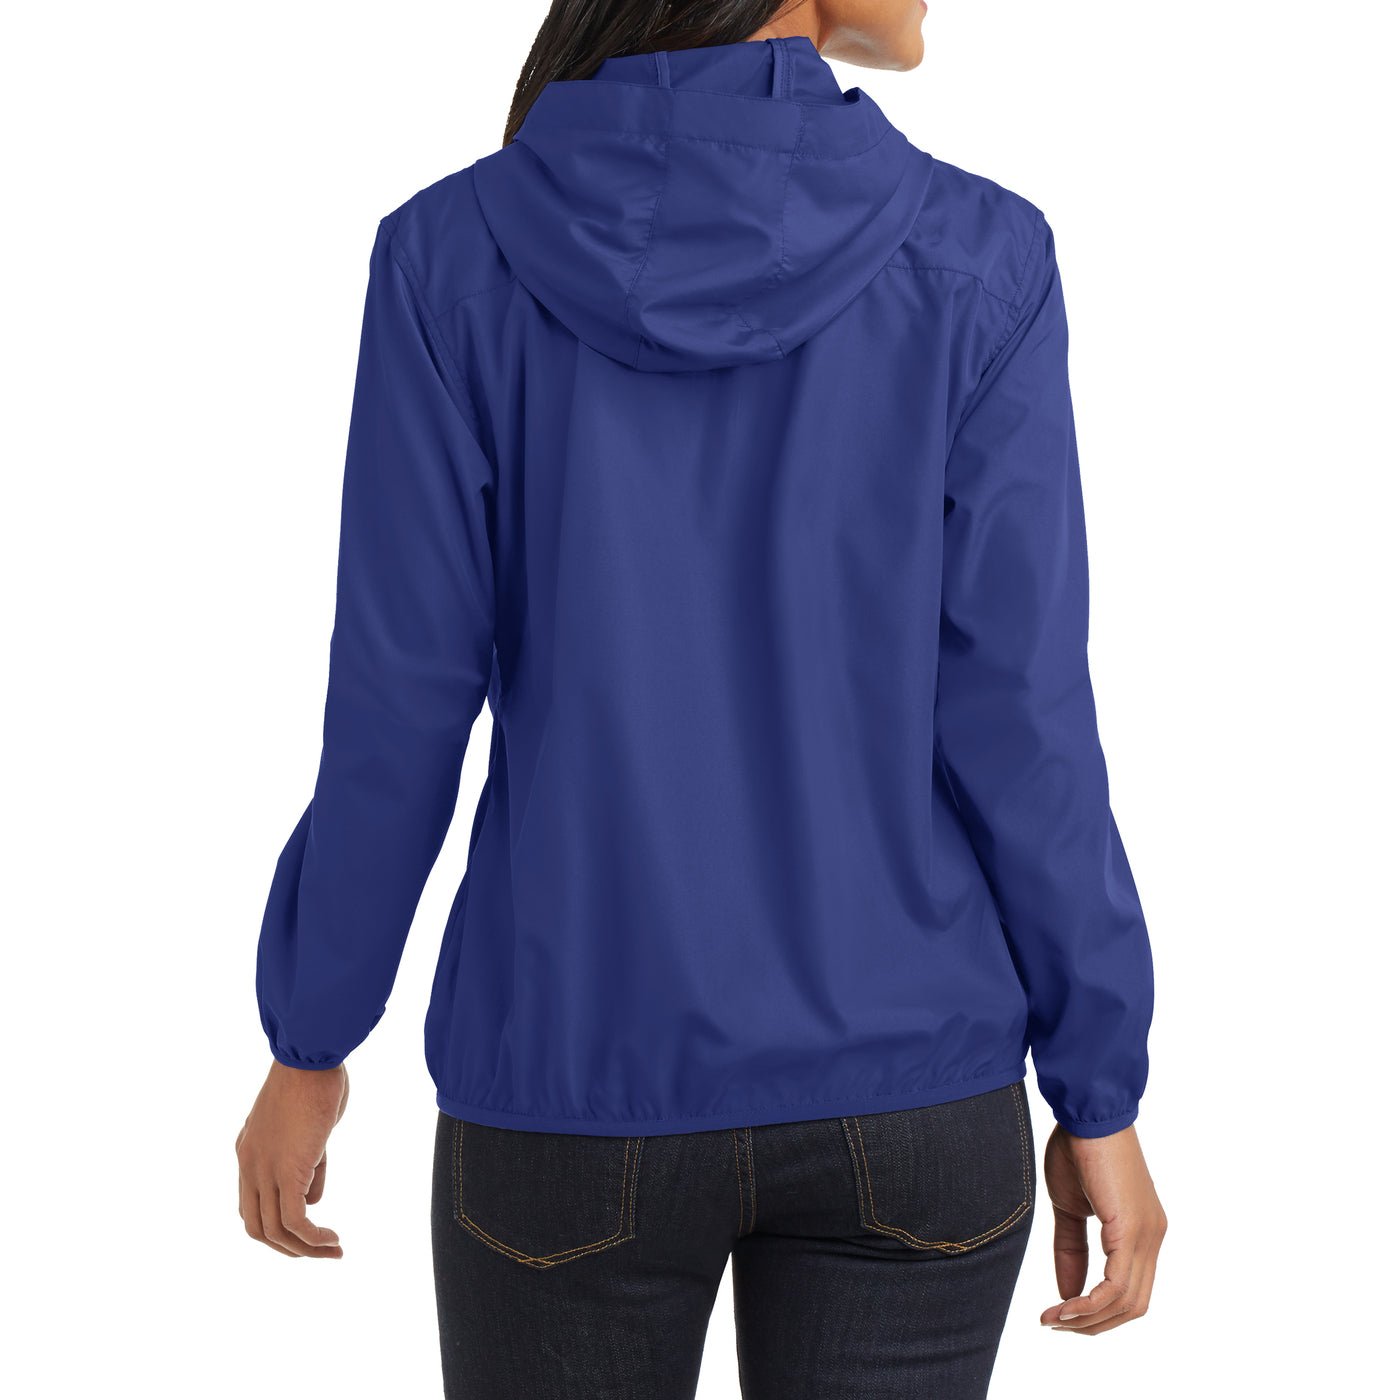 Women's Hooded Essential Jacket - Mediterranean Blue - Back